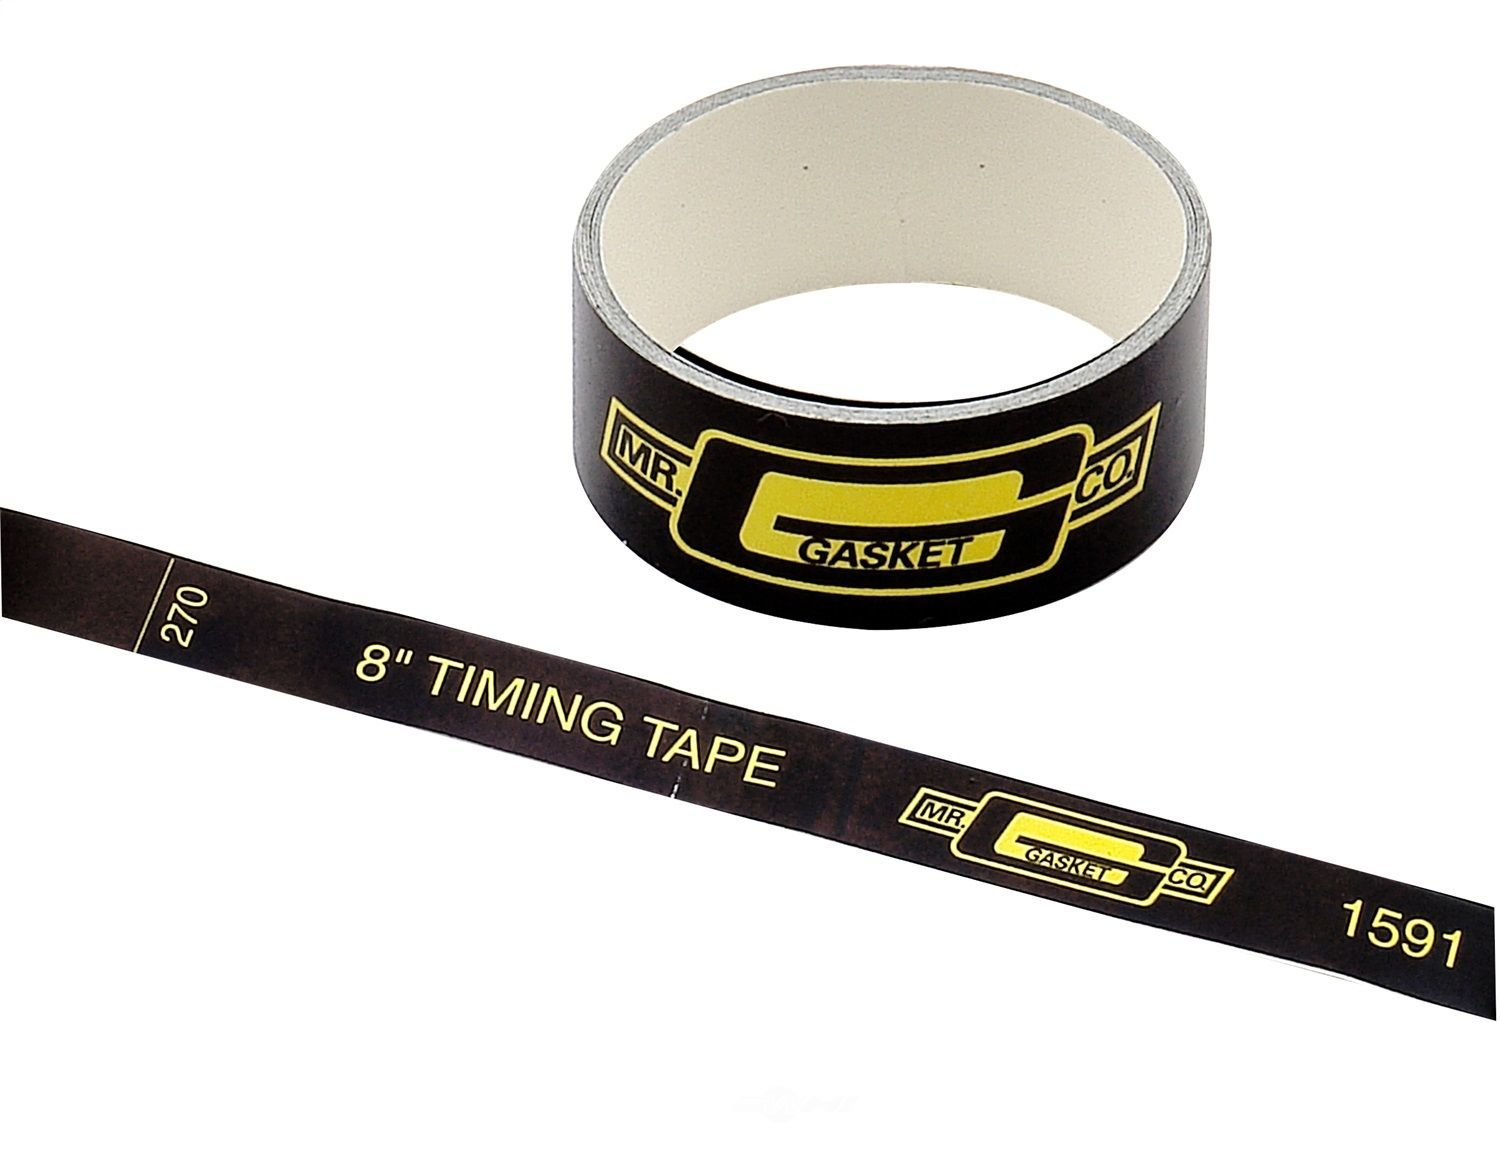 MR. GASKET - Precision Timing Tape - MRG 1591